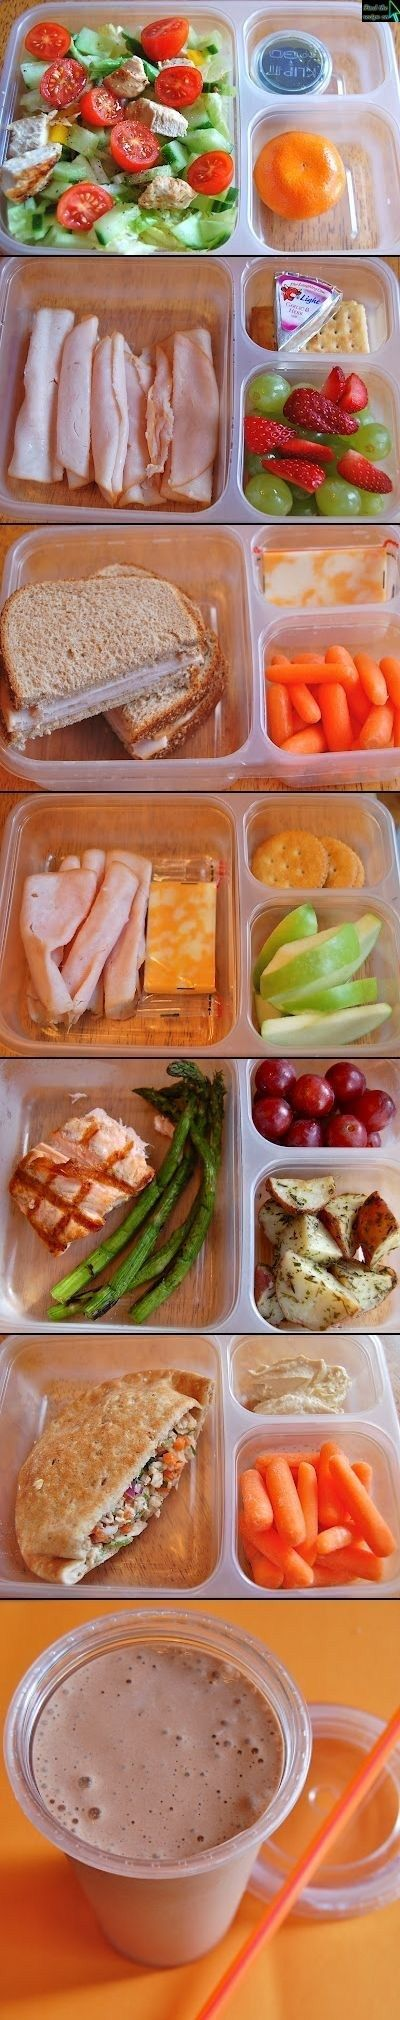 Ideas For Packing A Delicious Healthy Lunch I Love These Quick And Easy